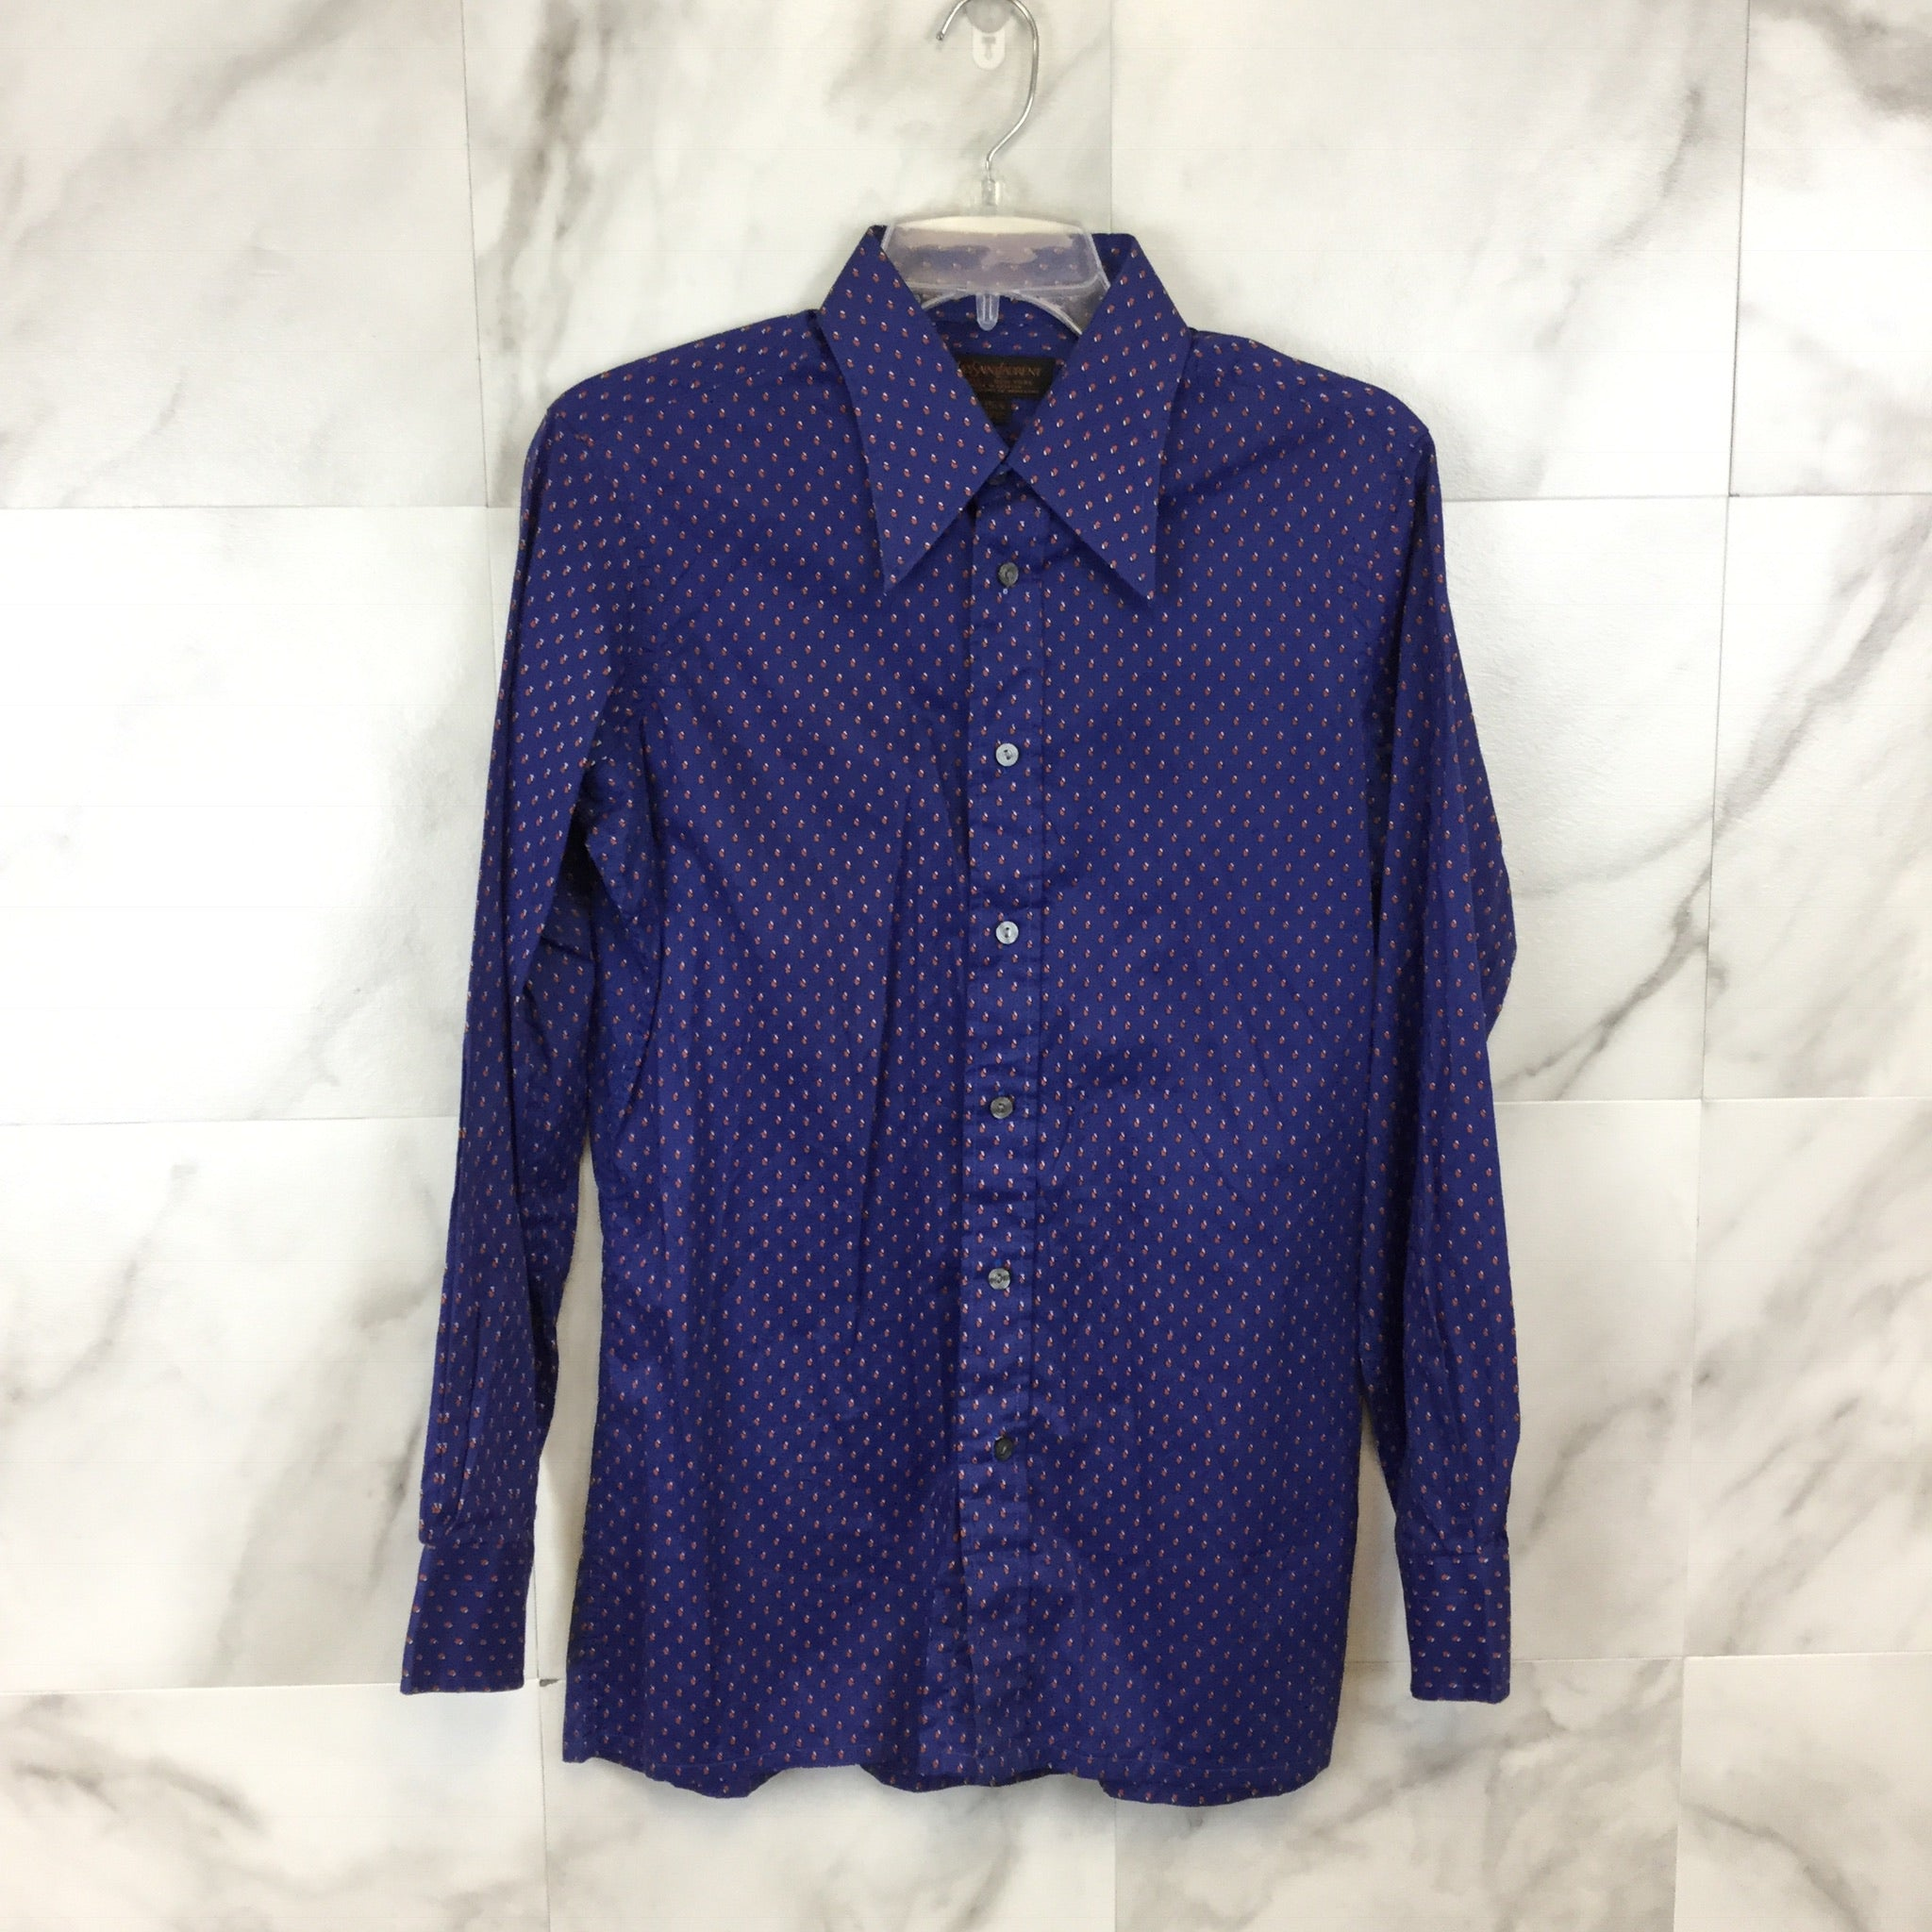 Men's Yves Saint Laurent Blue Dress Shirt size 15.5/M